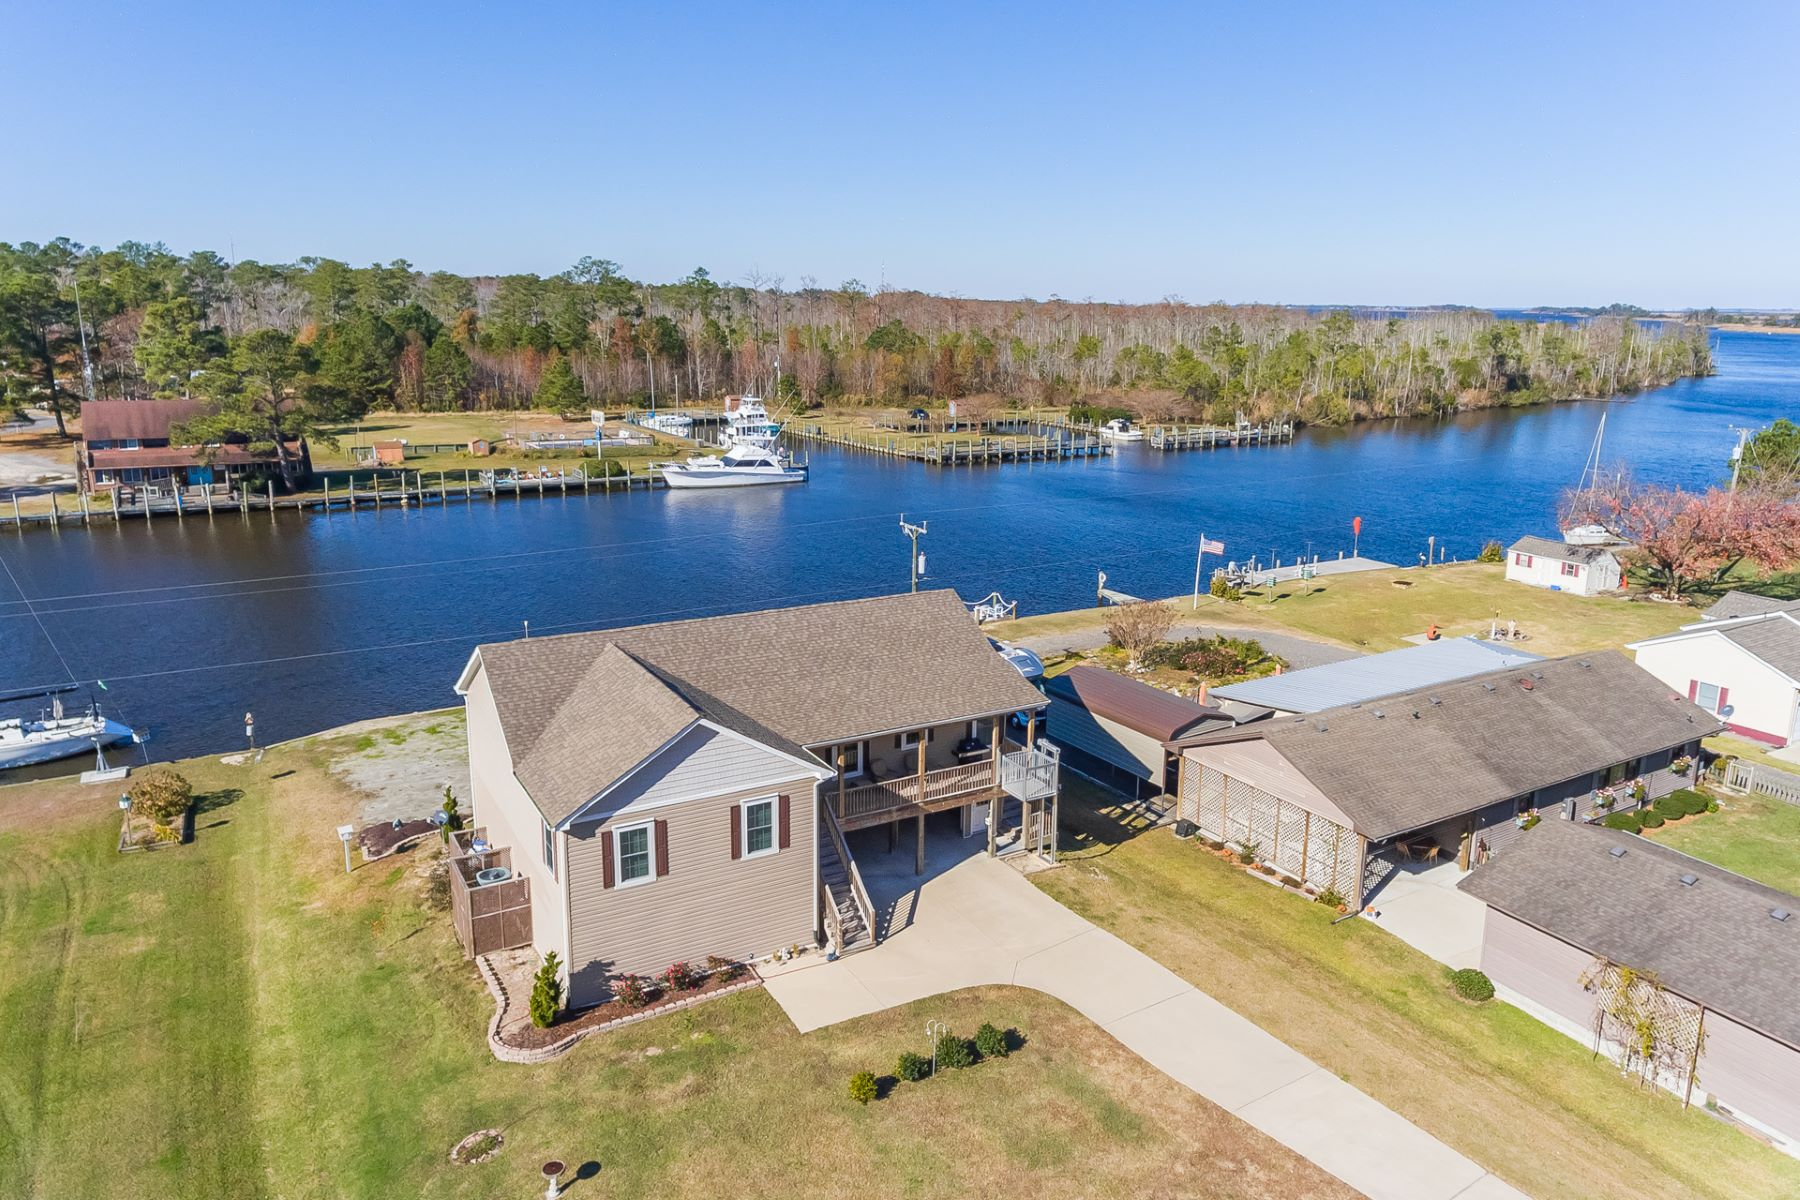 Single Family Homes for Active at Waterlily Rd 369 Waterlily Road Coinjock, North Carolina 27923 United States